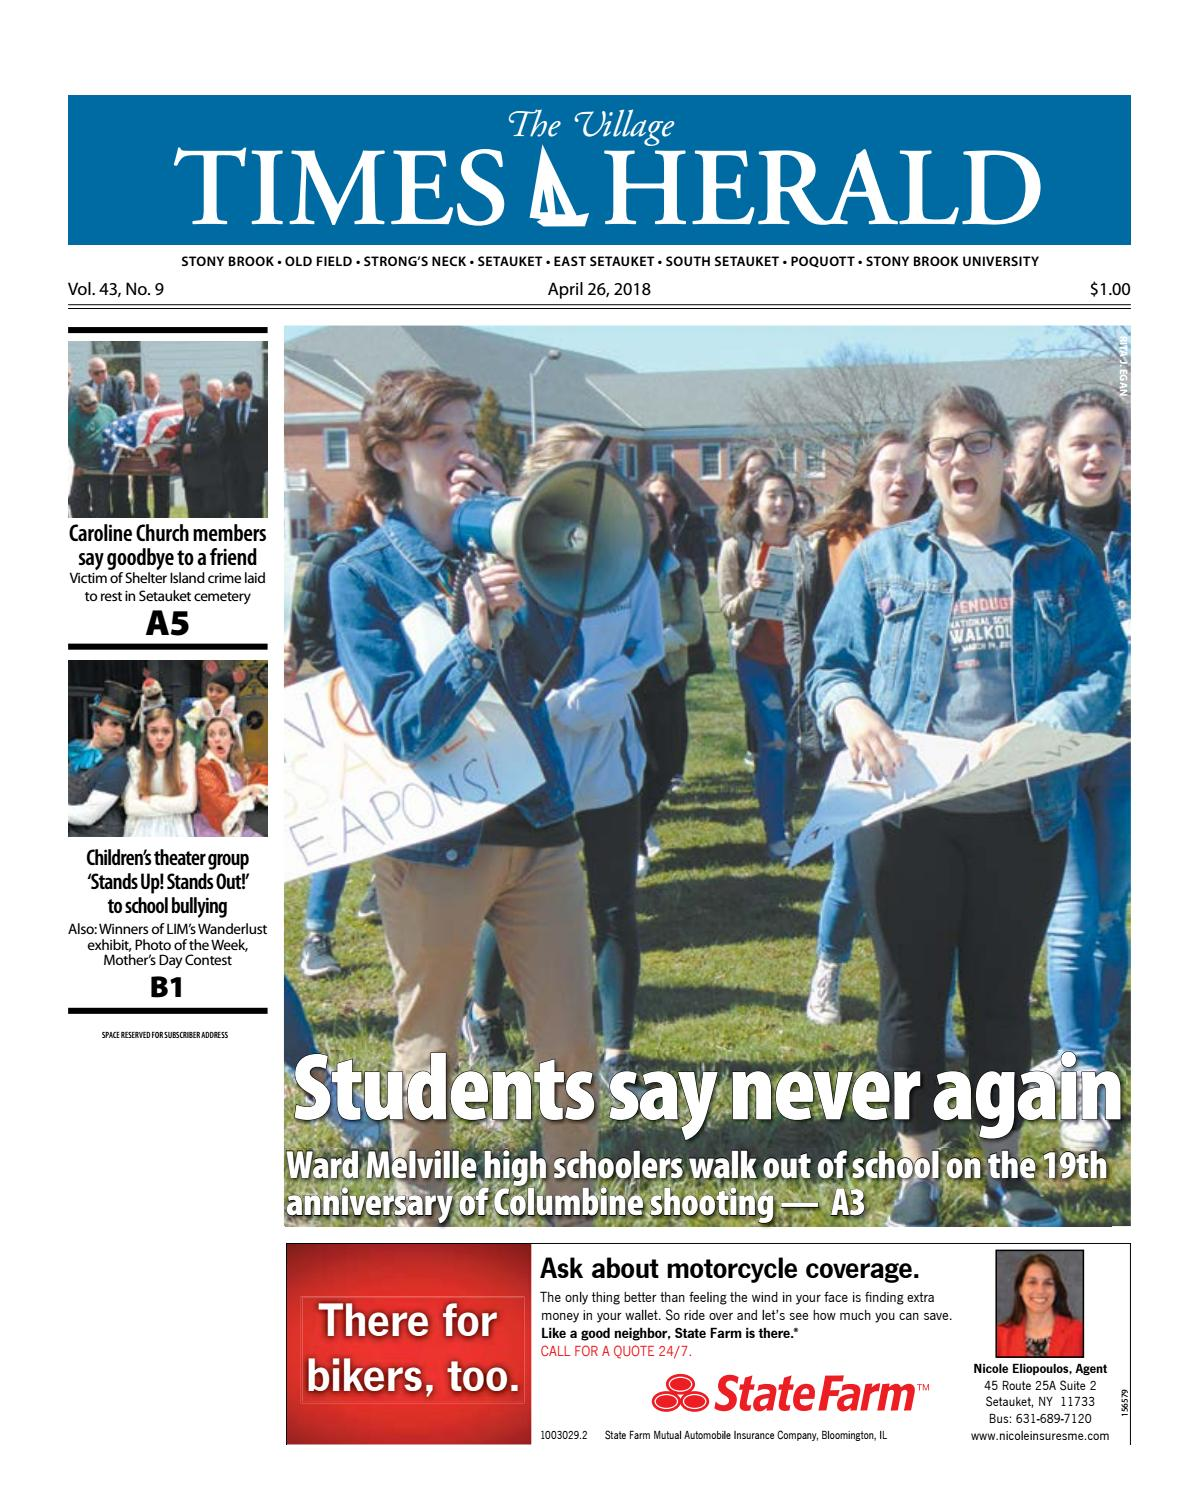 The Village Times Herald - April 26, 2018 by TBR News Media - issuu